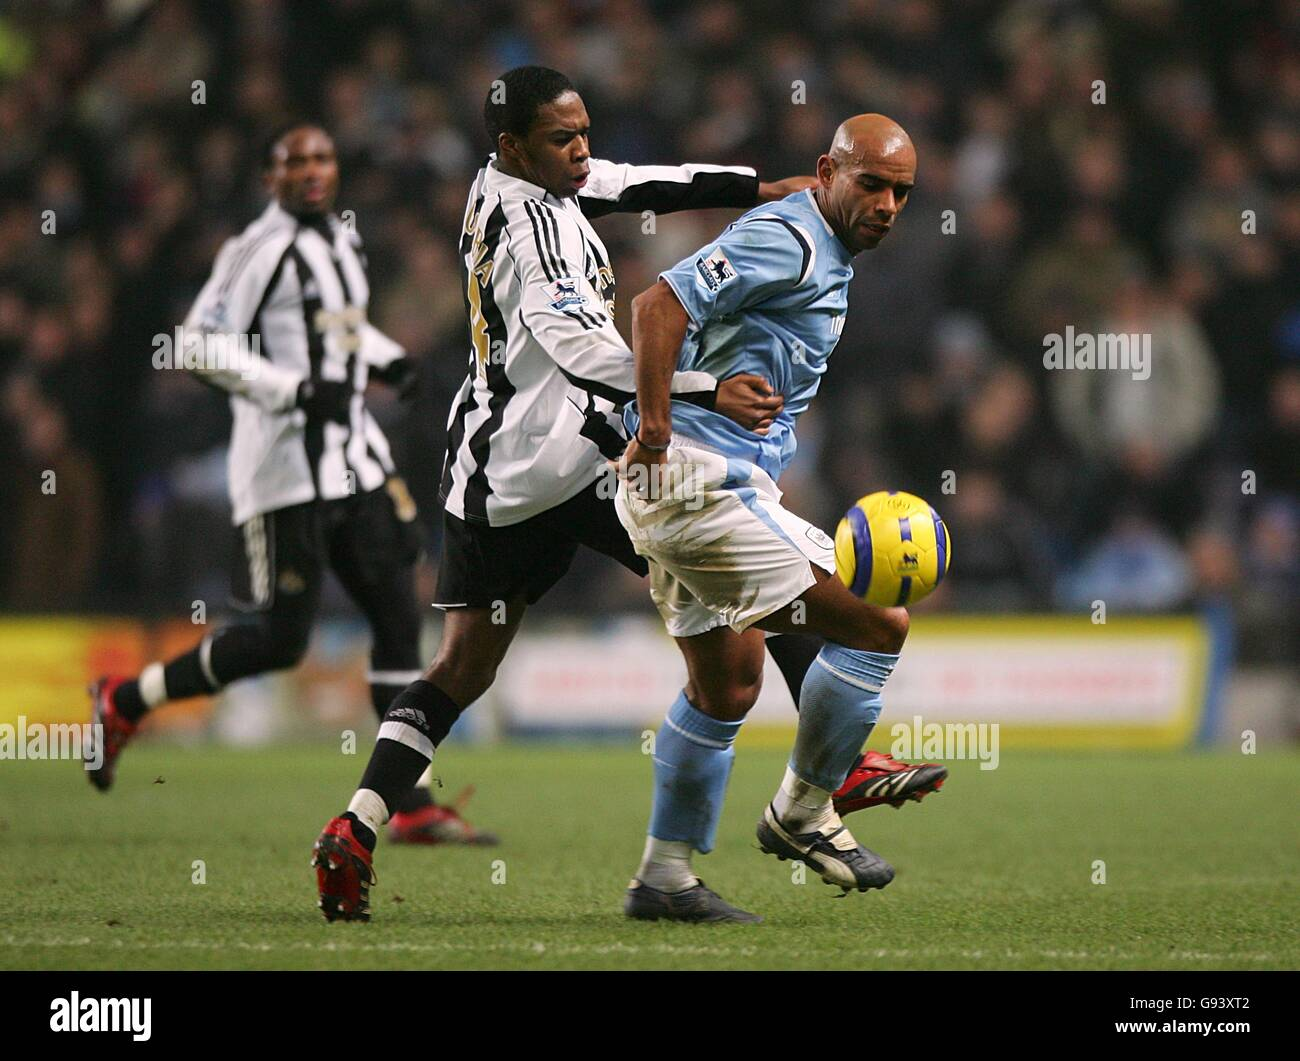 Soccer - FA Barclays Premiership - Manchester City v Newcastle United - City of Manchester Stadium - Stock Image